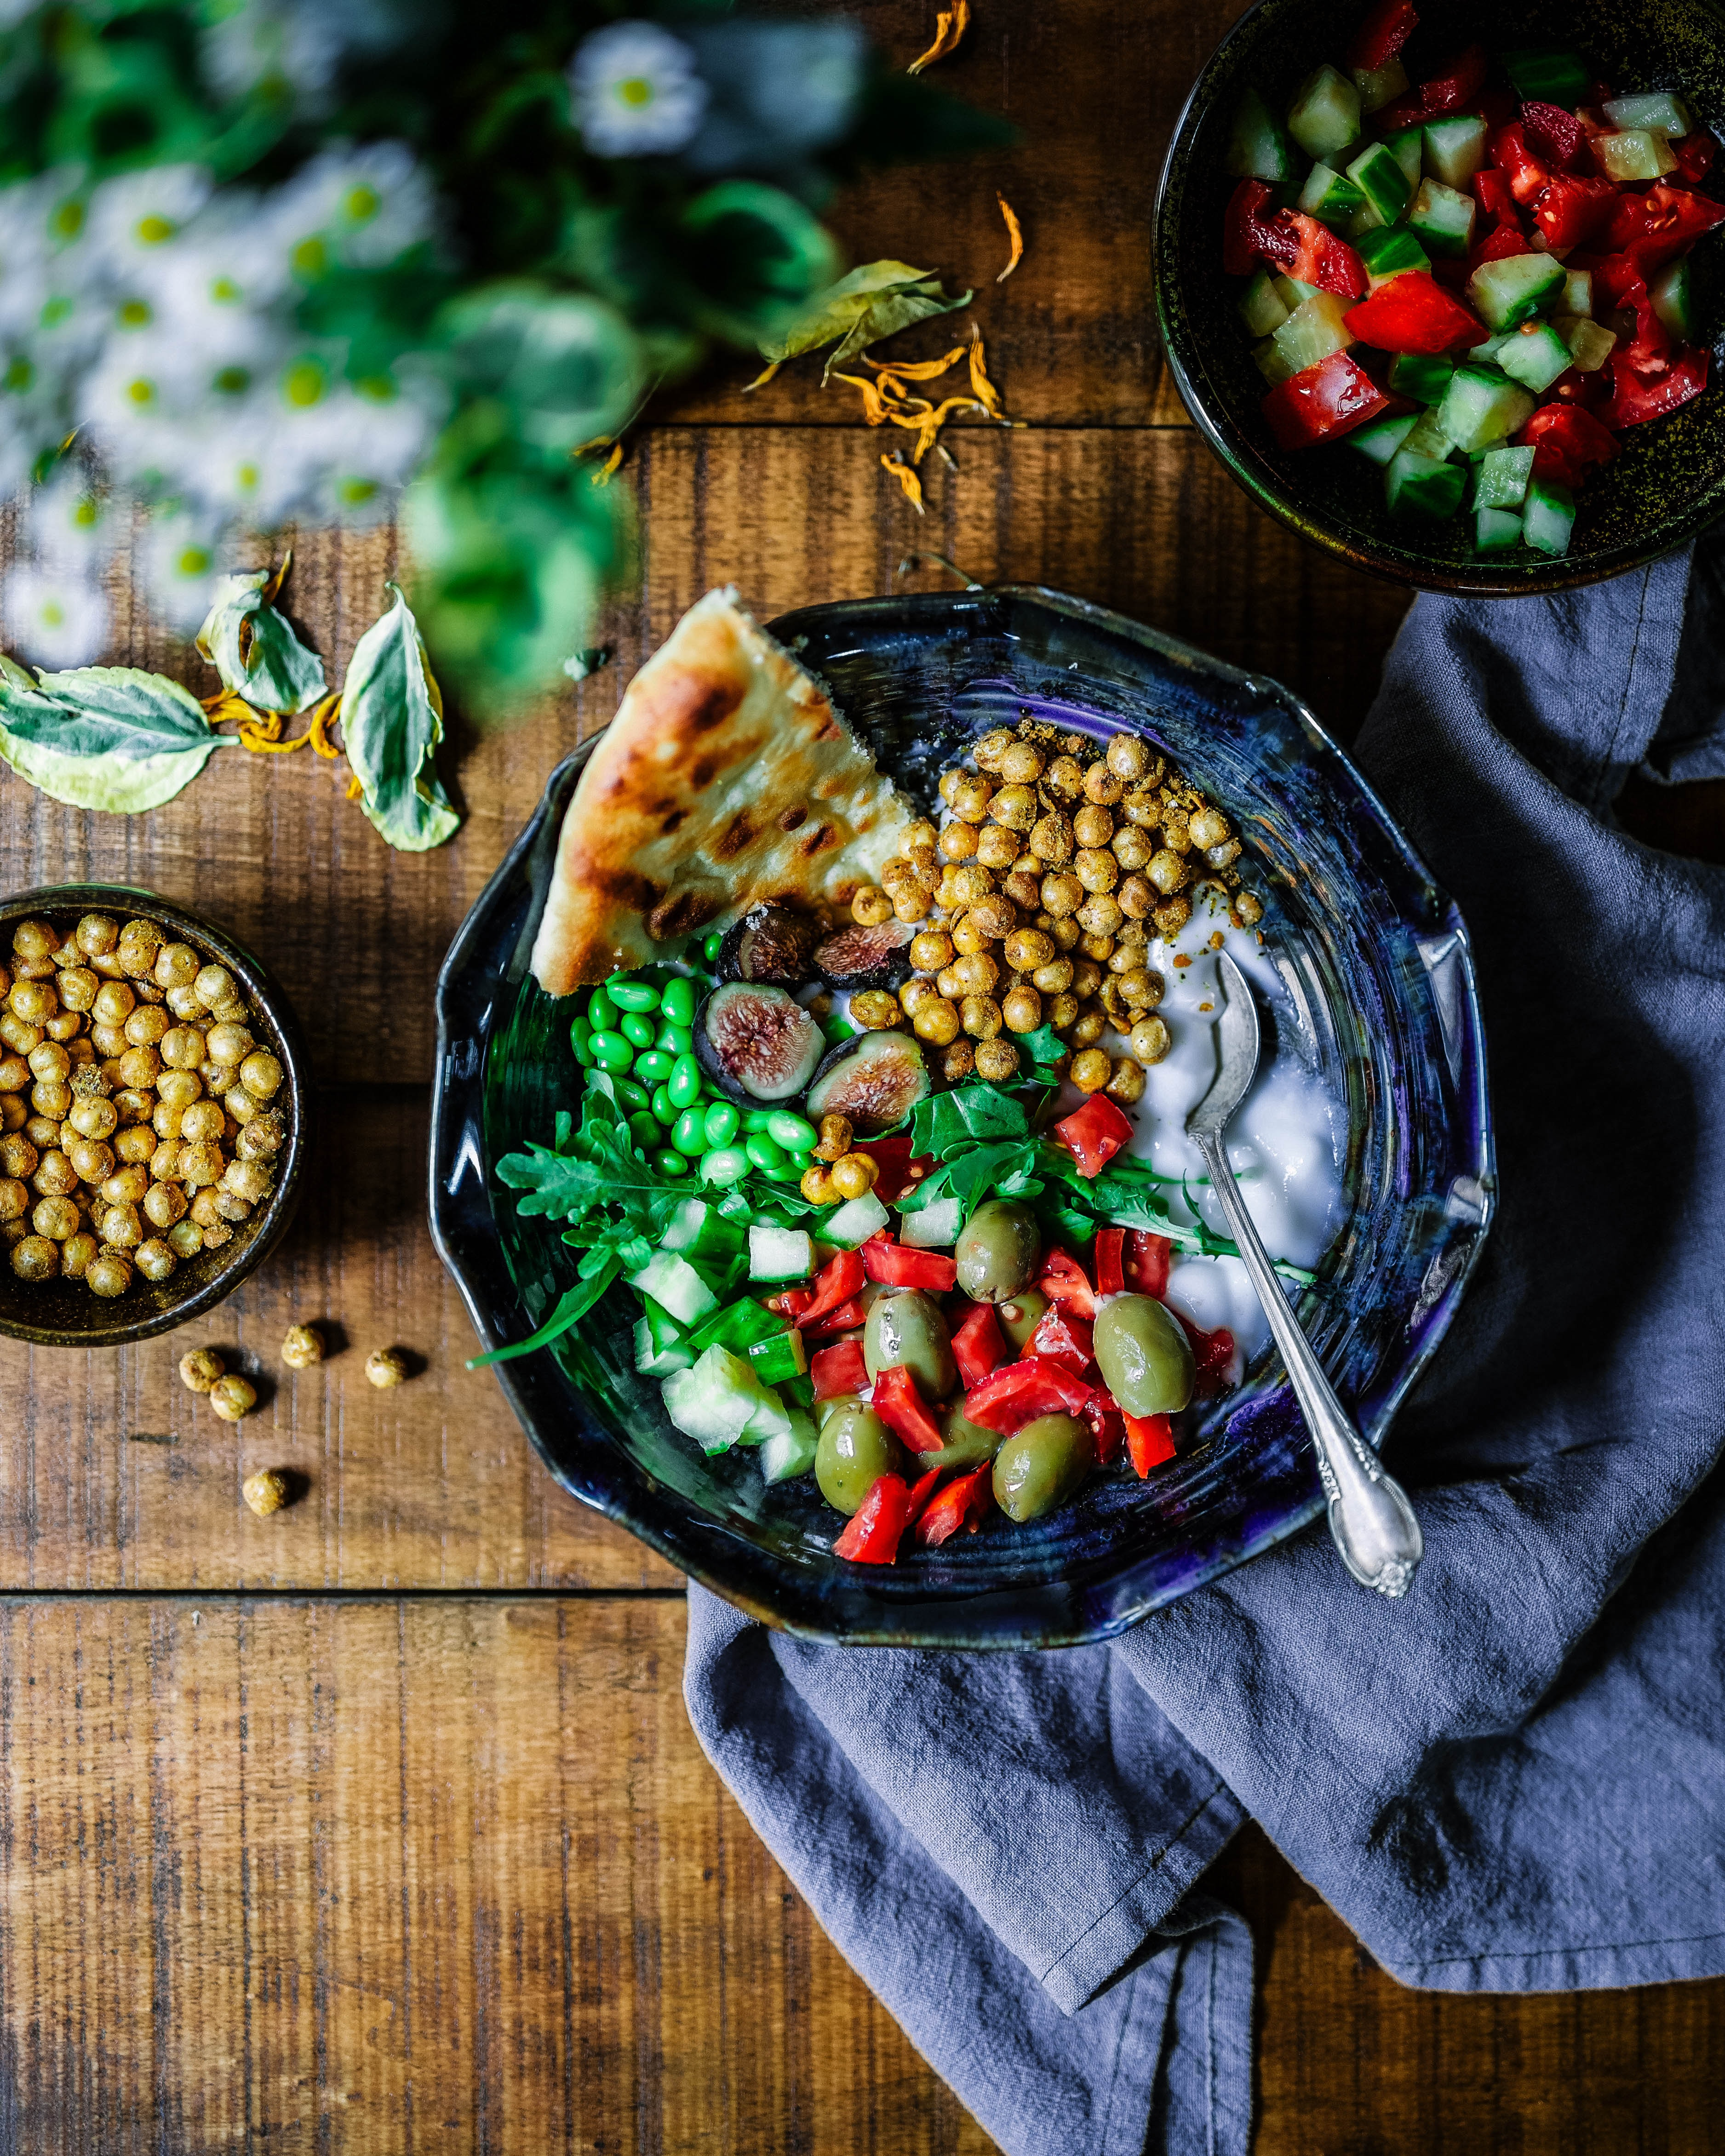 Image shows a blue plate holding yogurt, soy beans, olives, pimentos, chickpeas, flatbread and various other diced vegetables.